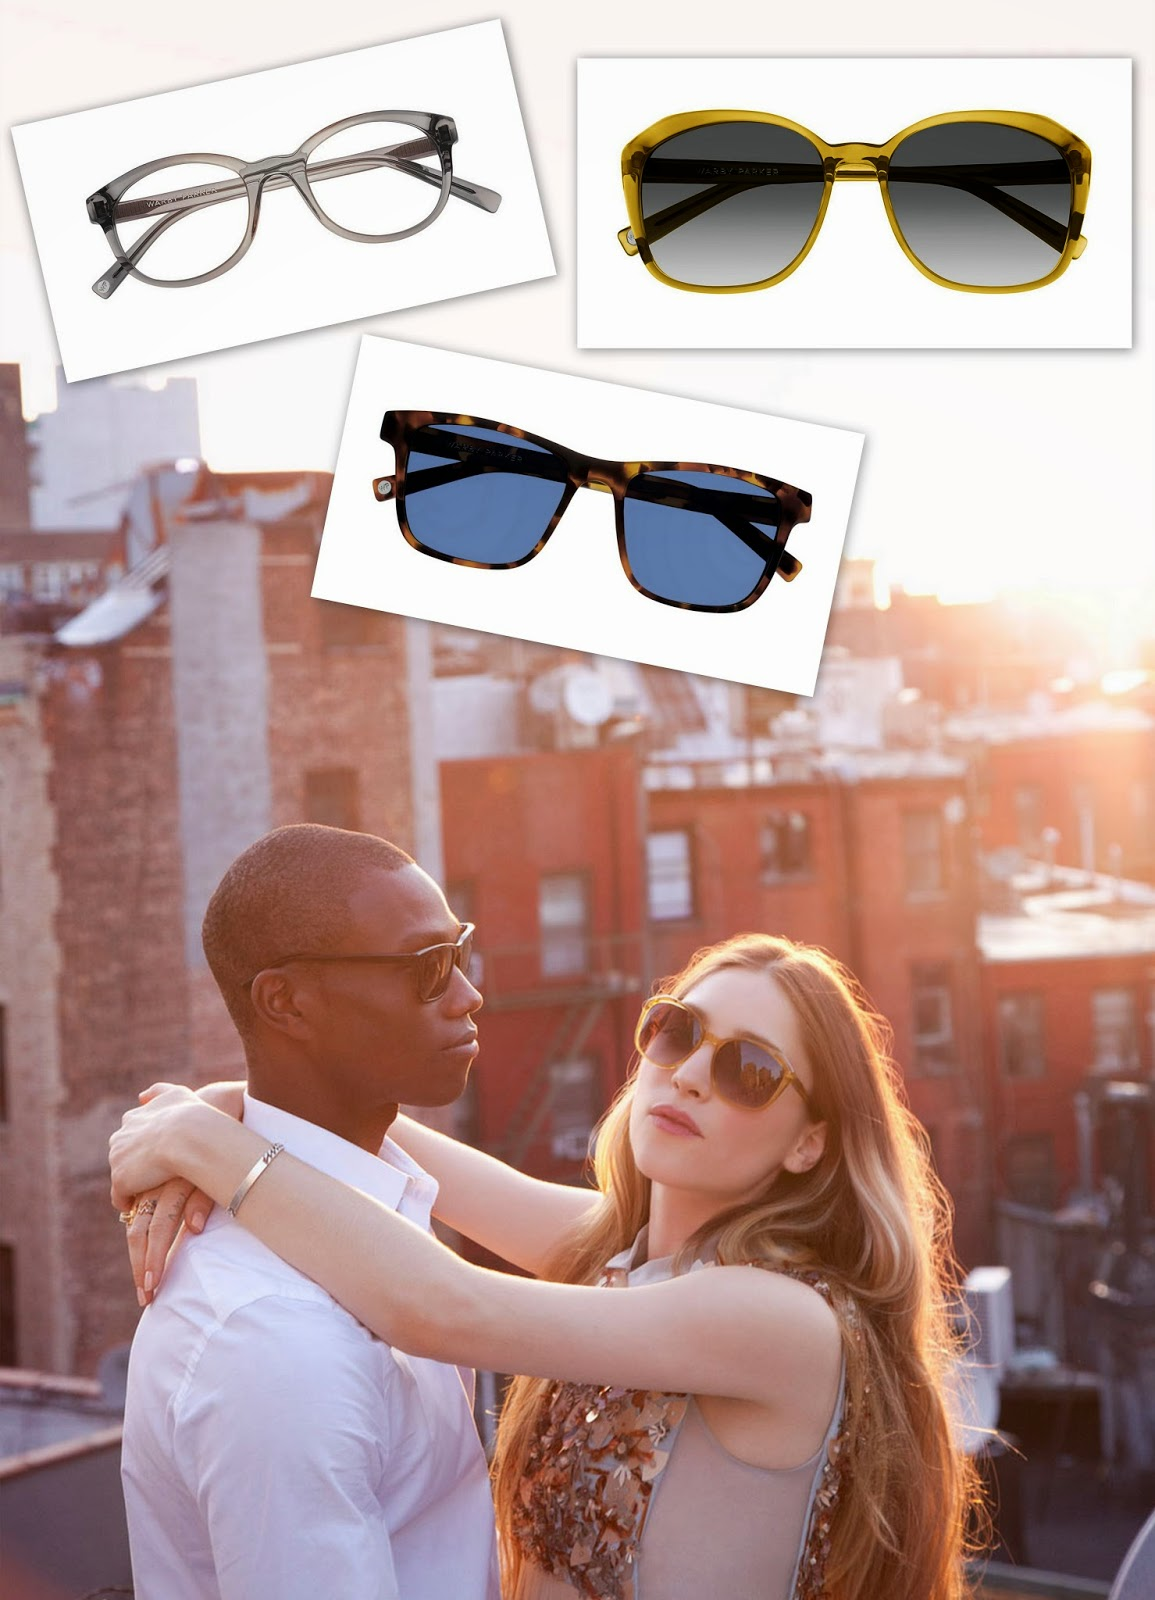 beacon collection, warby parker, sunglasses